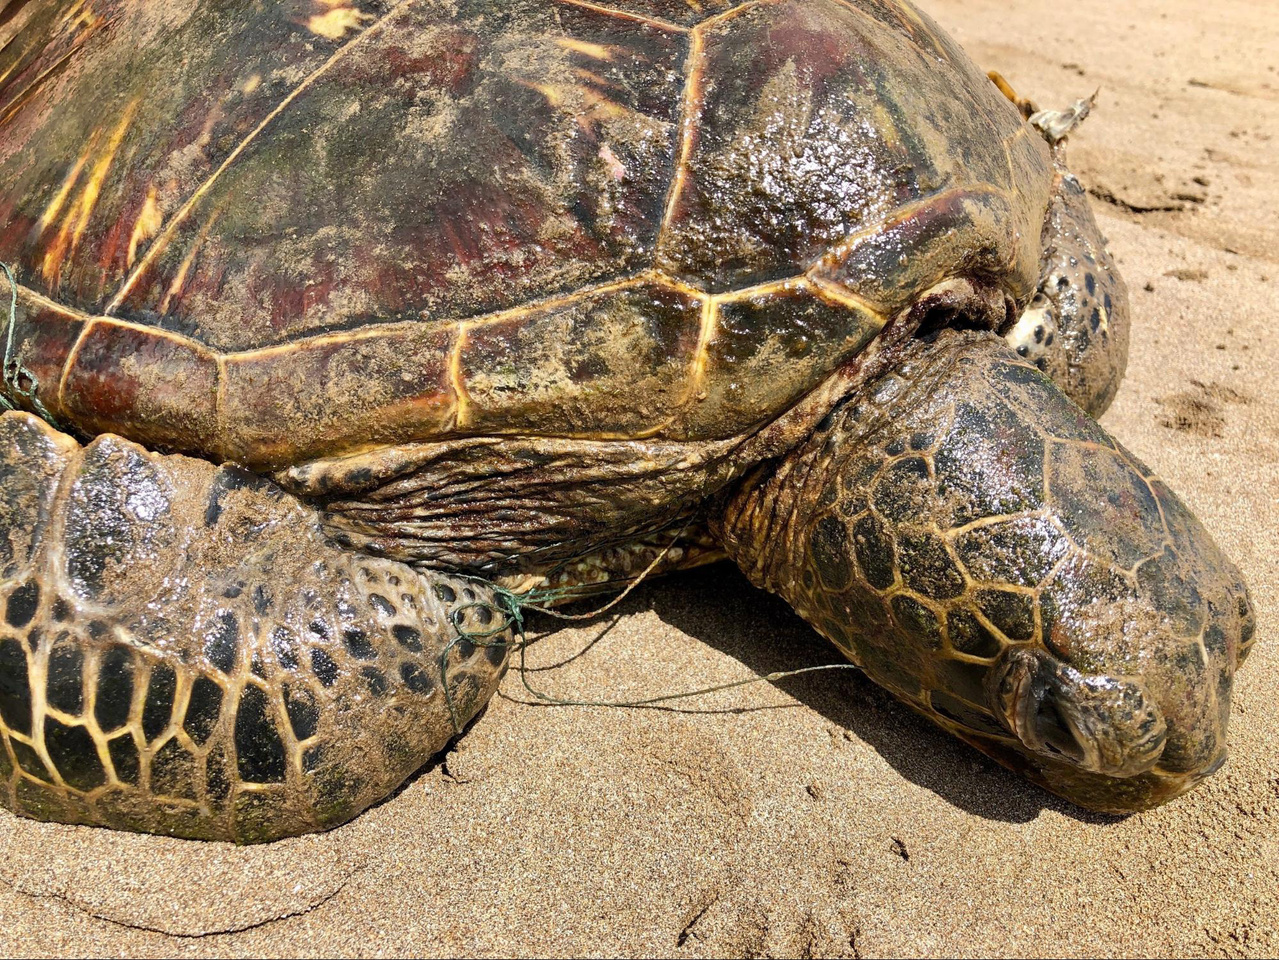 Photograph of turtle entangled in fishing line.